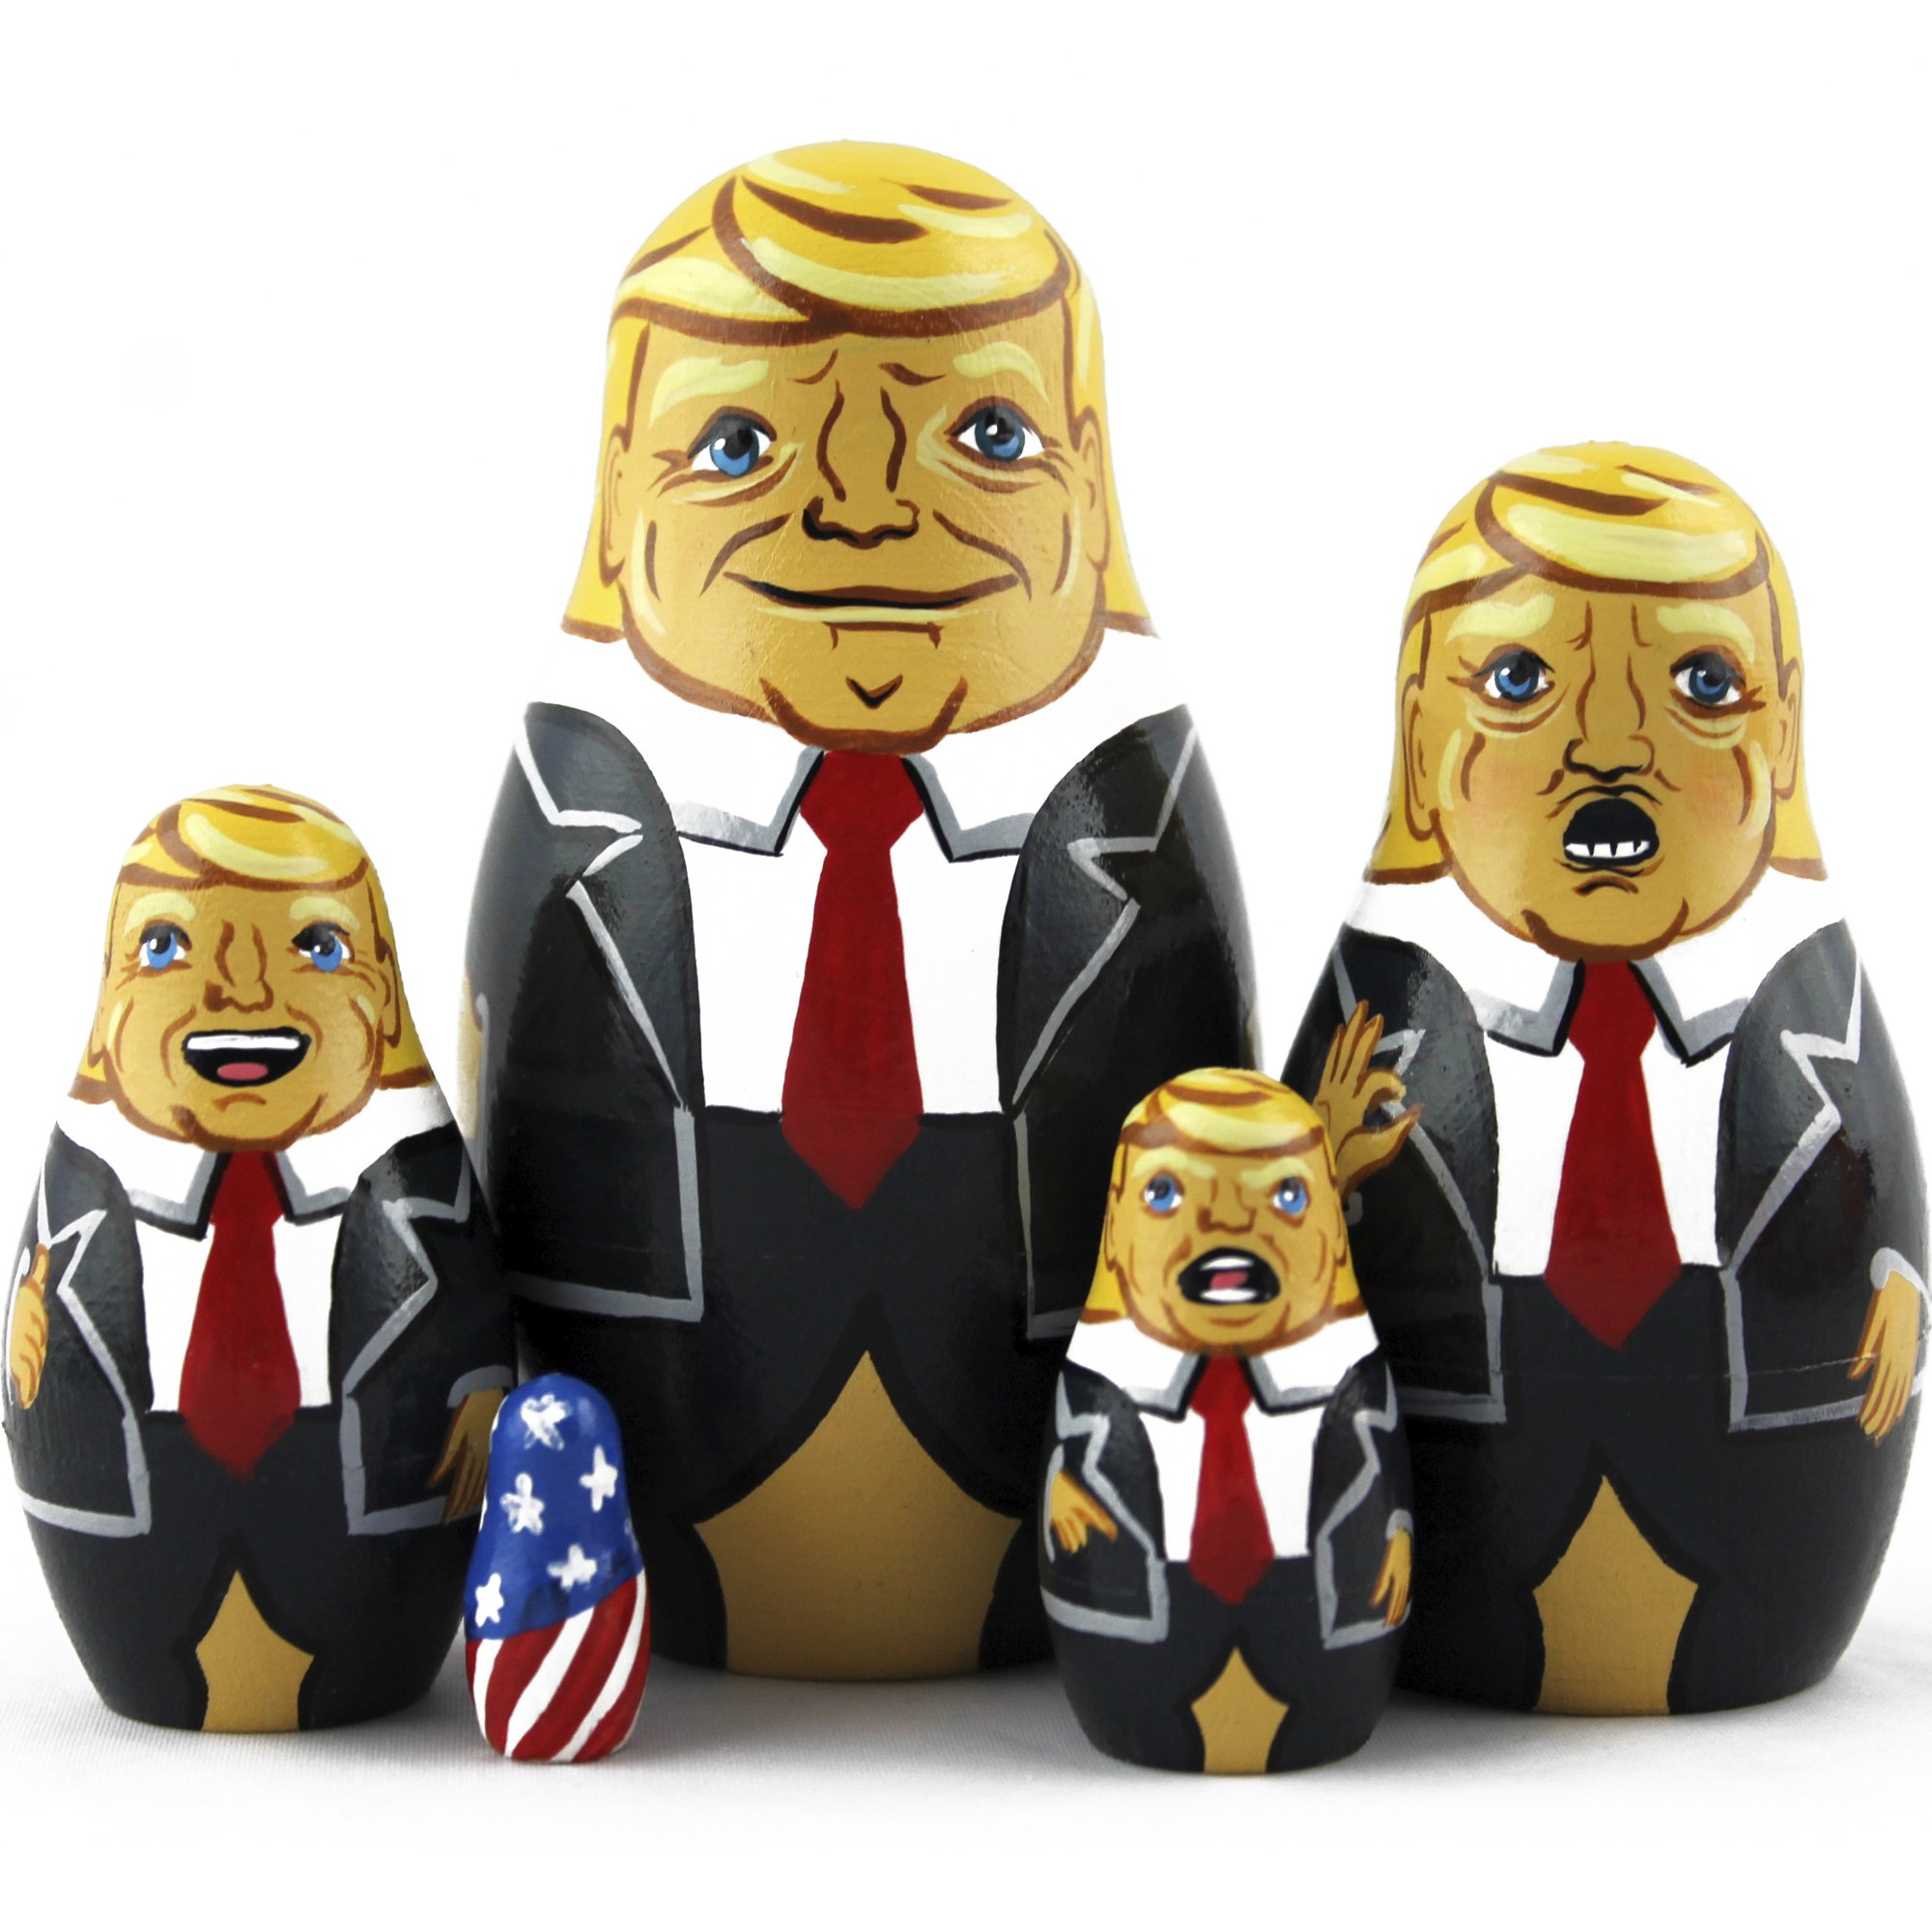 Donald Trump Gifts - Donald Trump Funny Toy Doll - Trump Nesting Dolls Gag Gifts - Set 5 pc 3.7 inches by MATRYOSHKA&HANDICRAFT (Image #1)